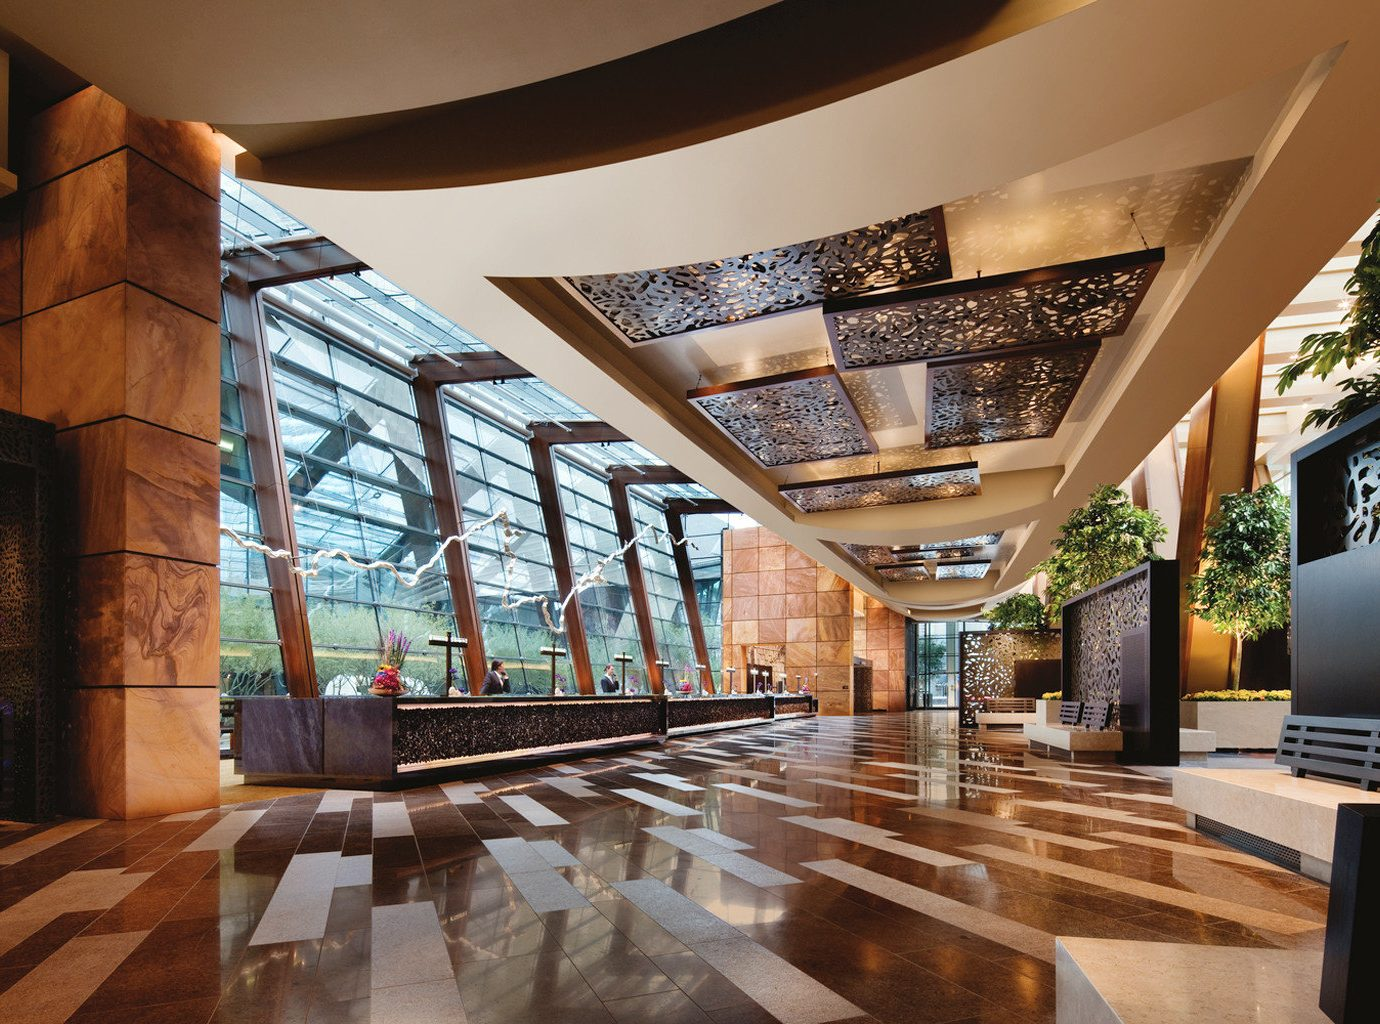 Lobby Architecture home living room tourist attraction mansion stone Resort headquarters